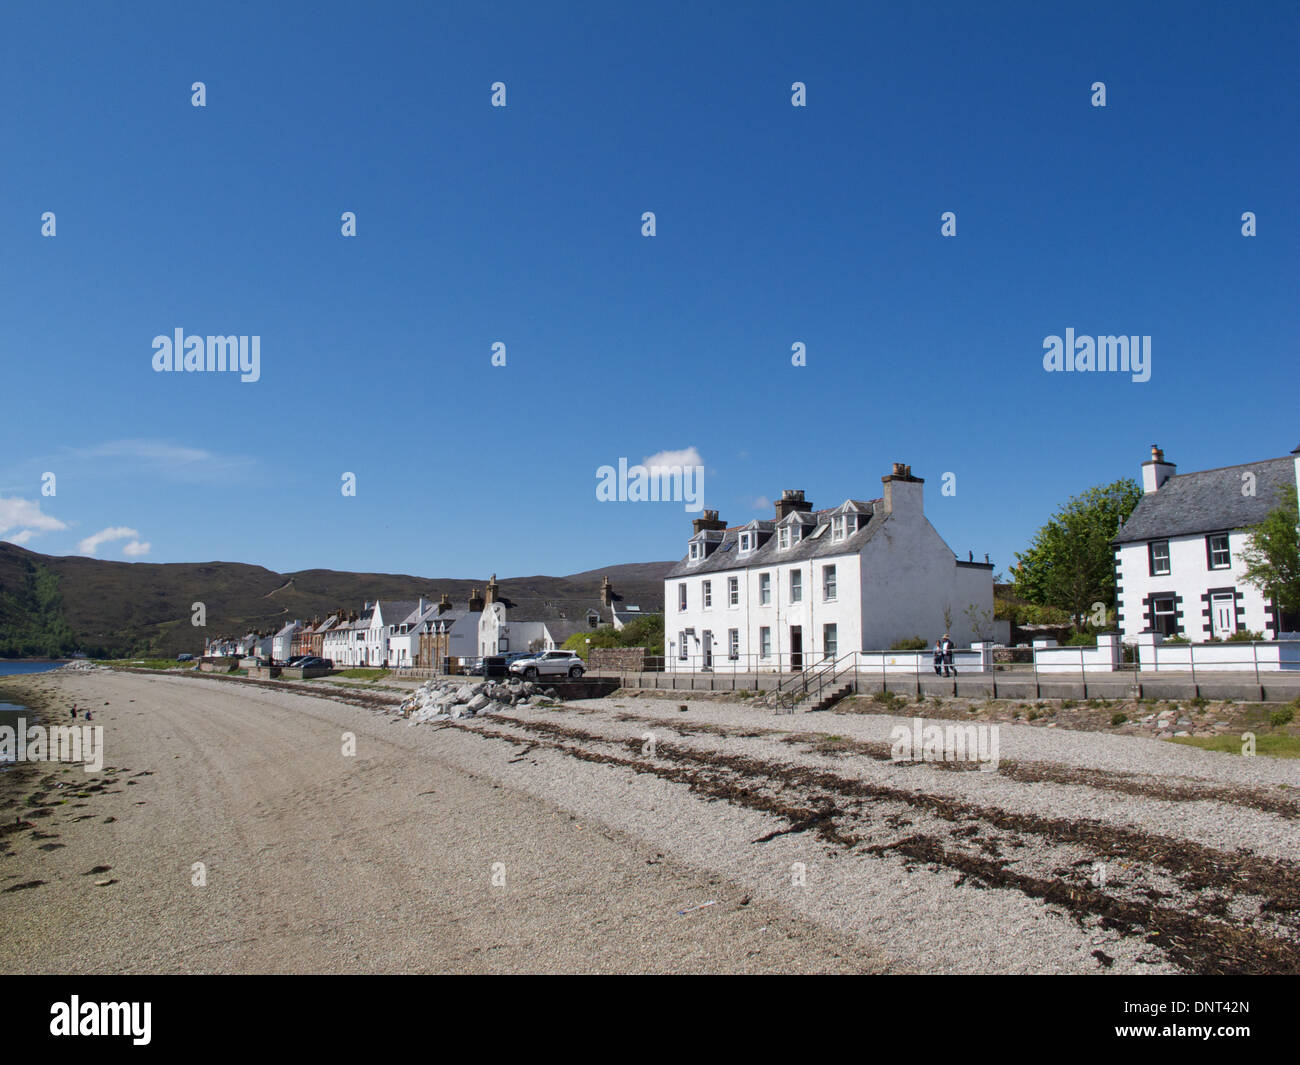 Ullapool, a picturesque fishing village on the shores of Loch Broom. - Stock Image